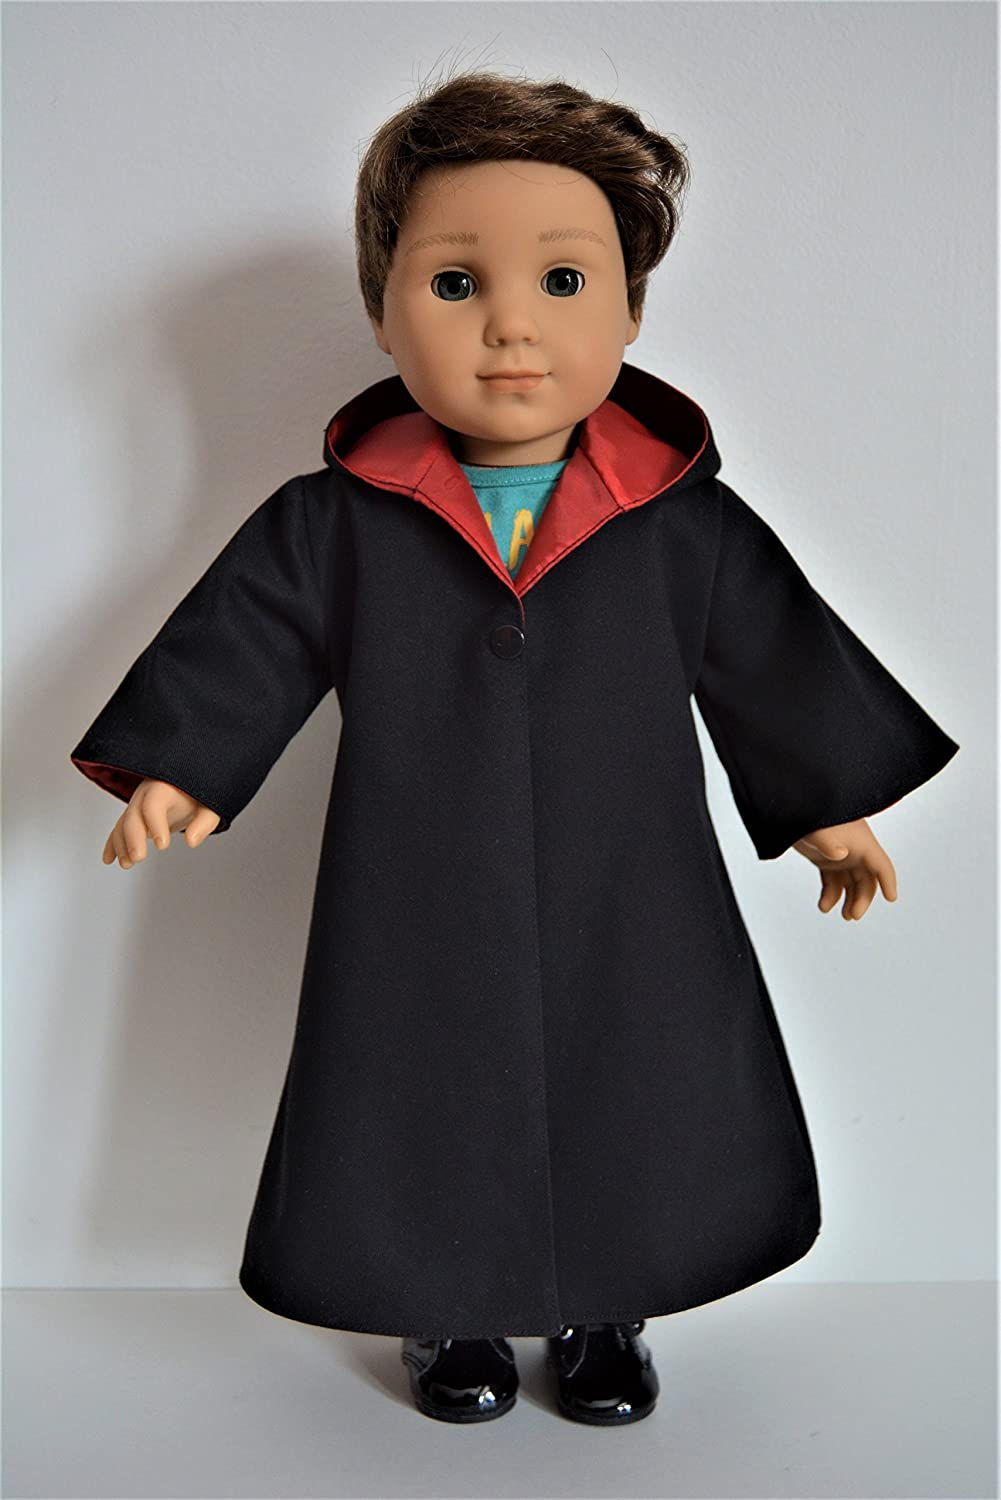 Handmade Wizard School Uniform Costume Cloak Robe Red House Color fit 18 American Girl Boy Dolls